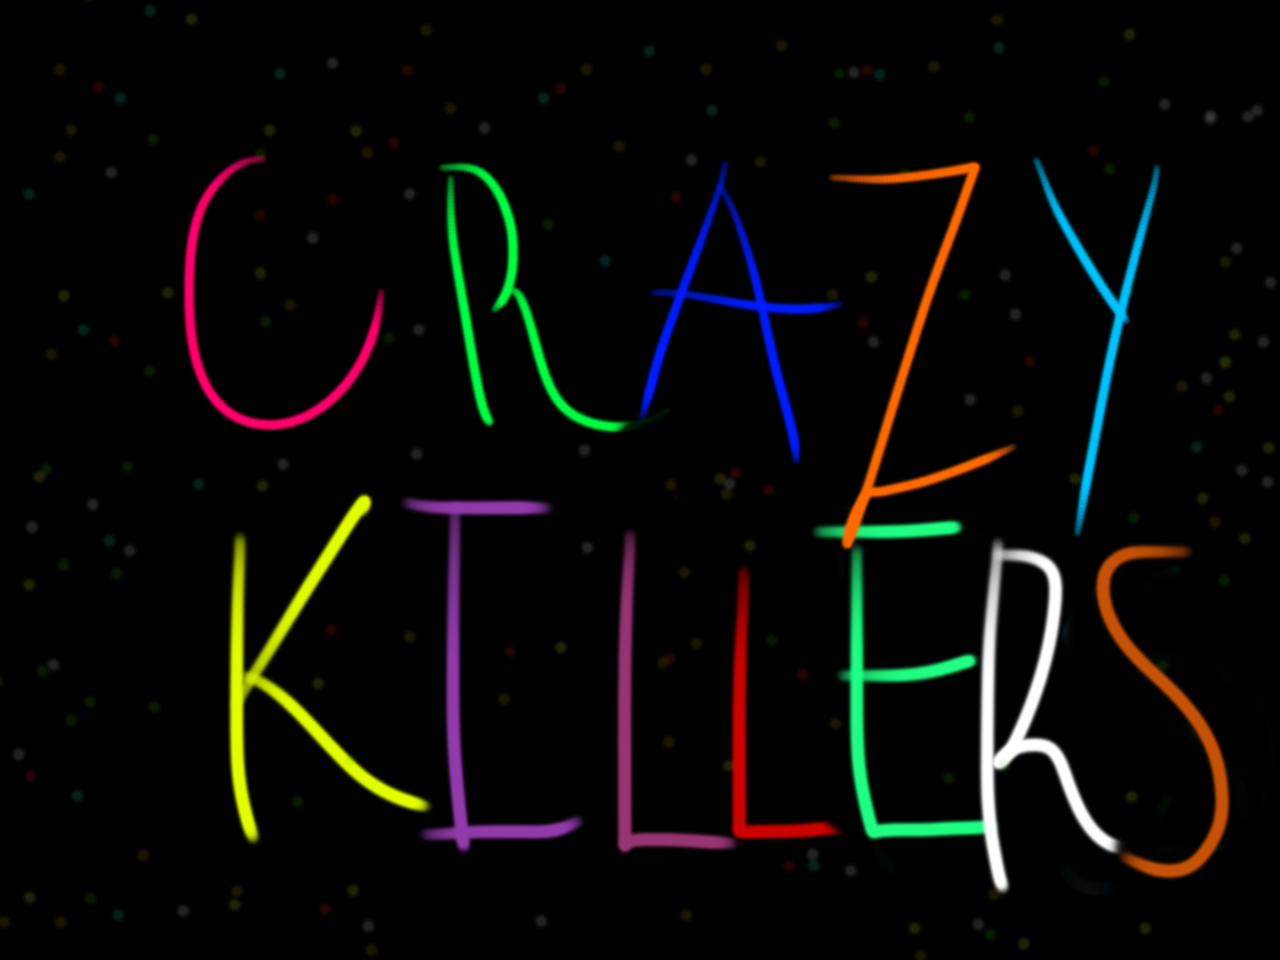 Crazy Killers by TitanSayan